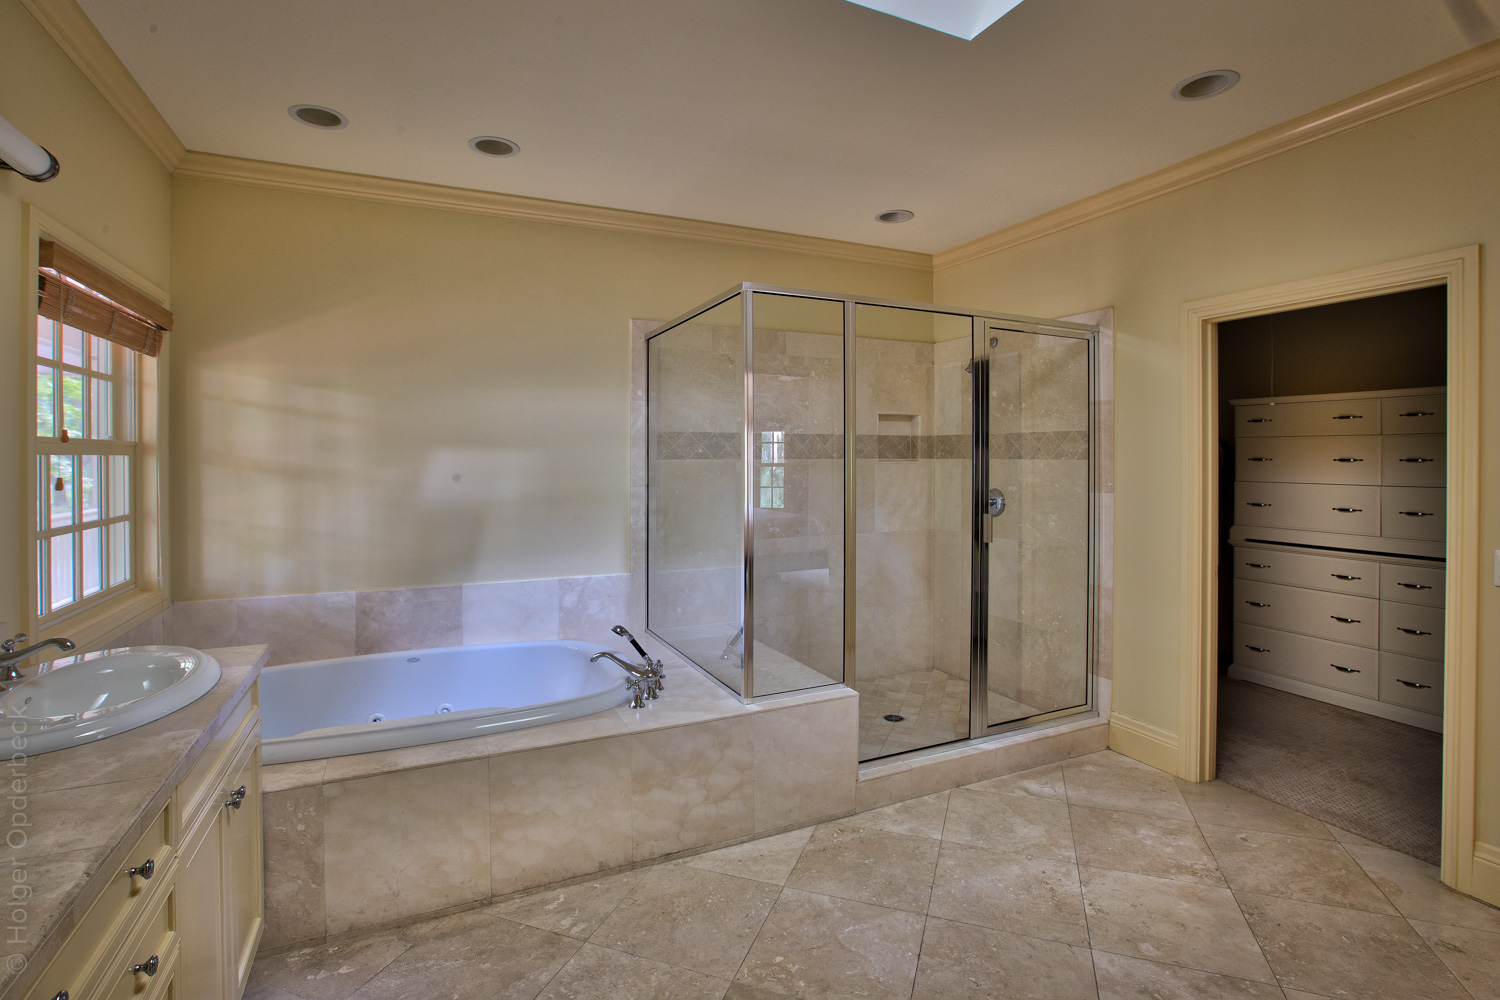 200 master-bath-shower.jpg